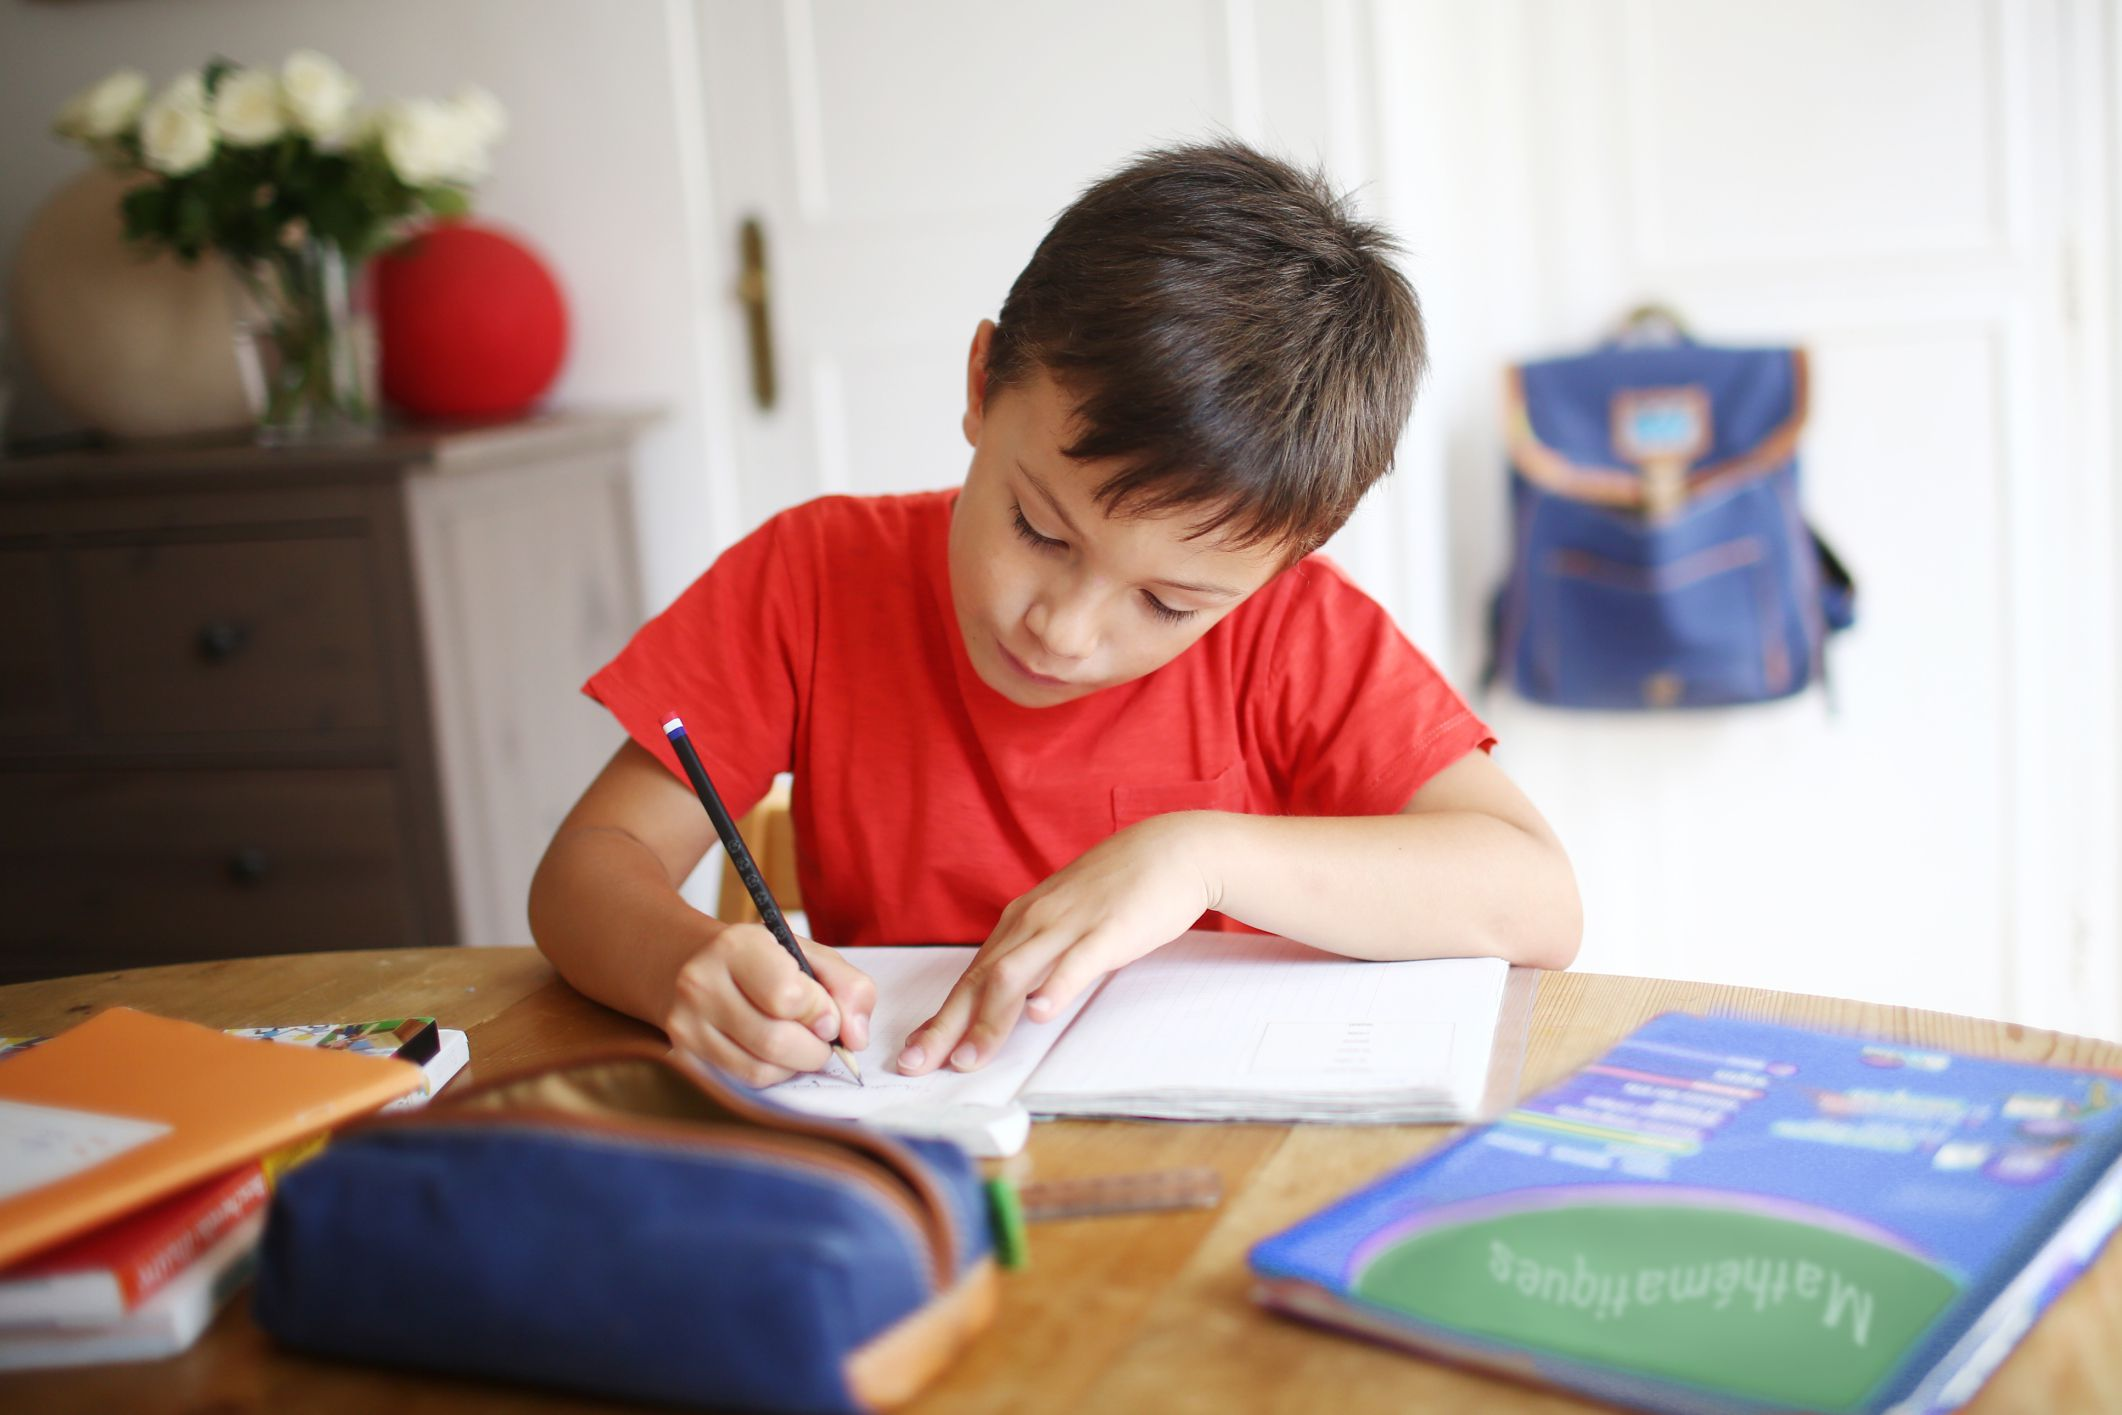 10 Tips for Helping Students With ADHD Get Organized